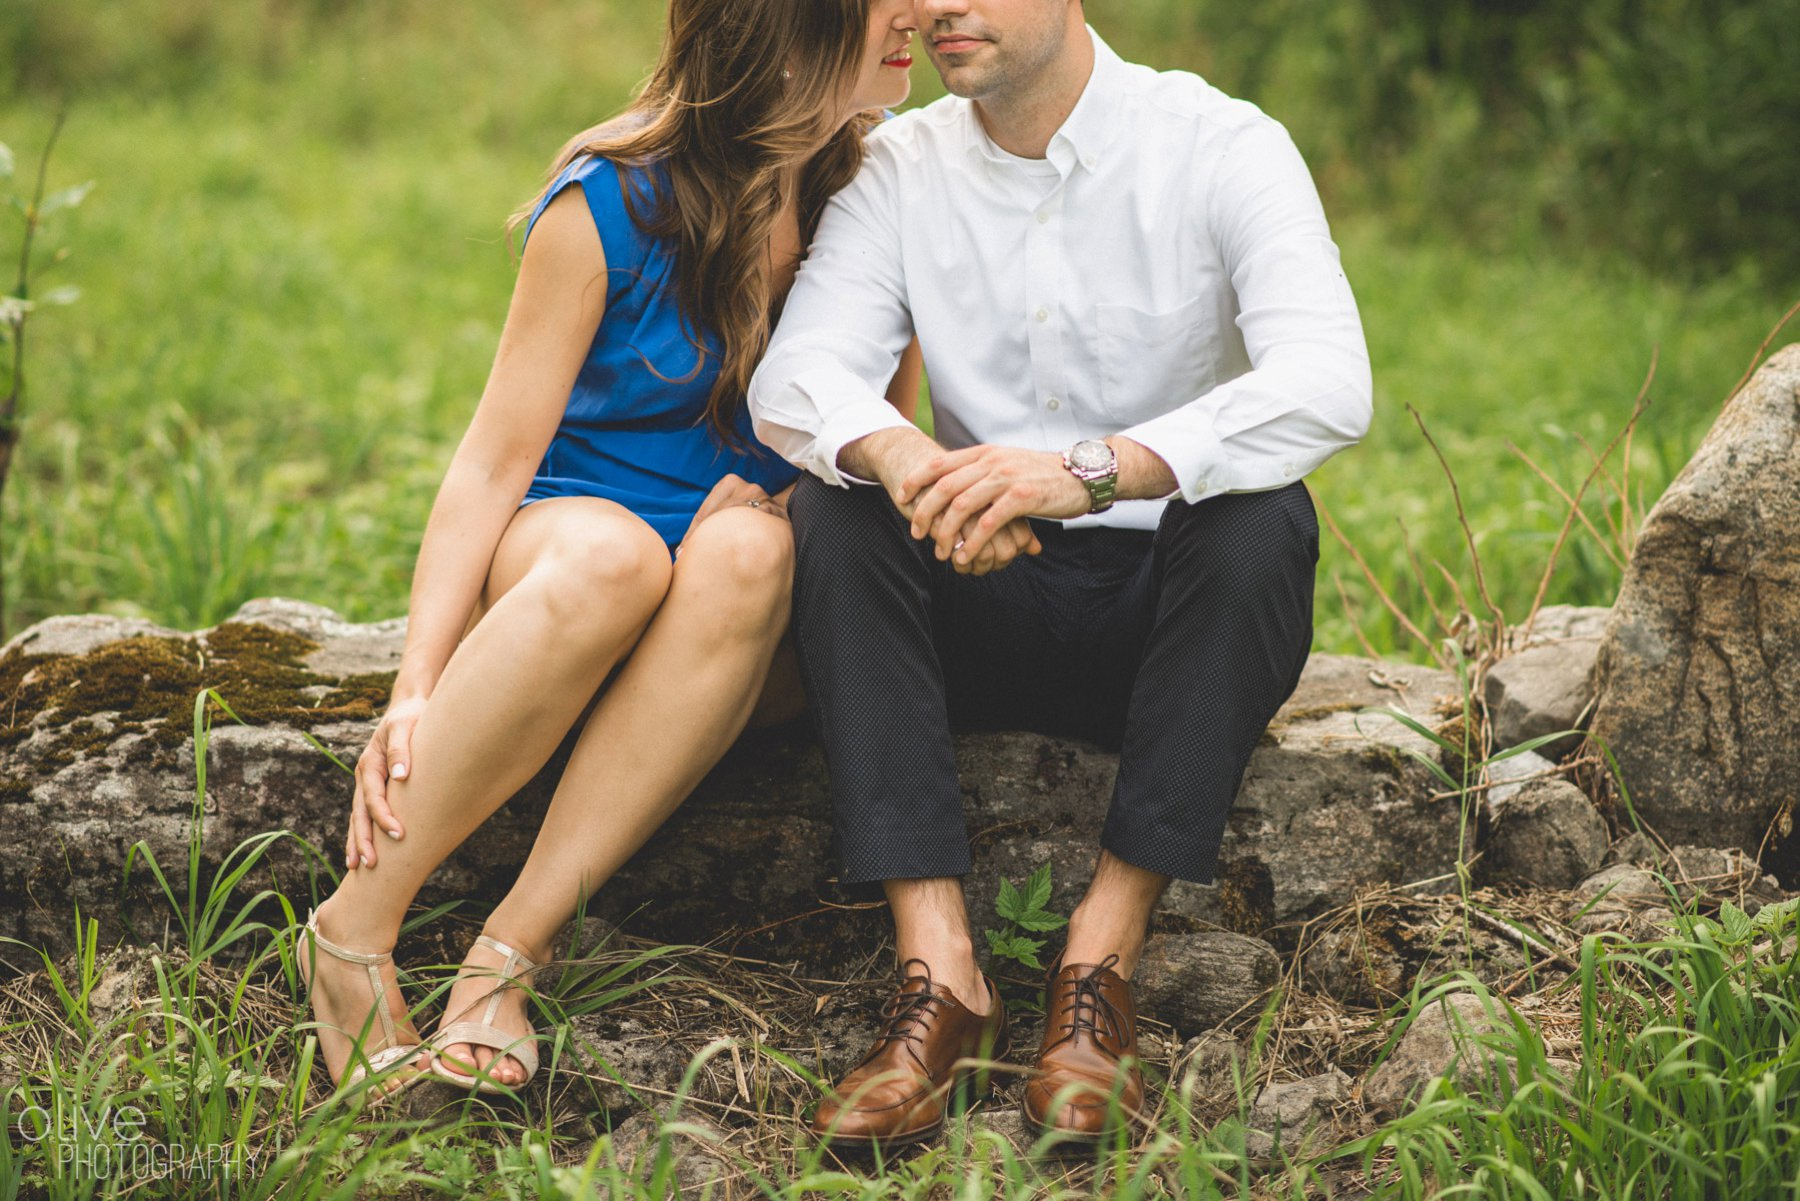 Toronto Wedding Photographer - Olive Photography_0809